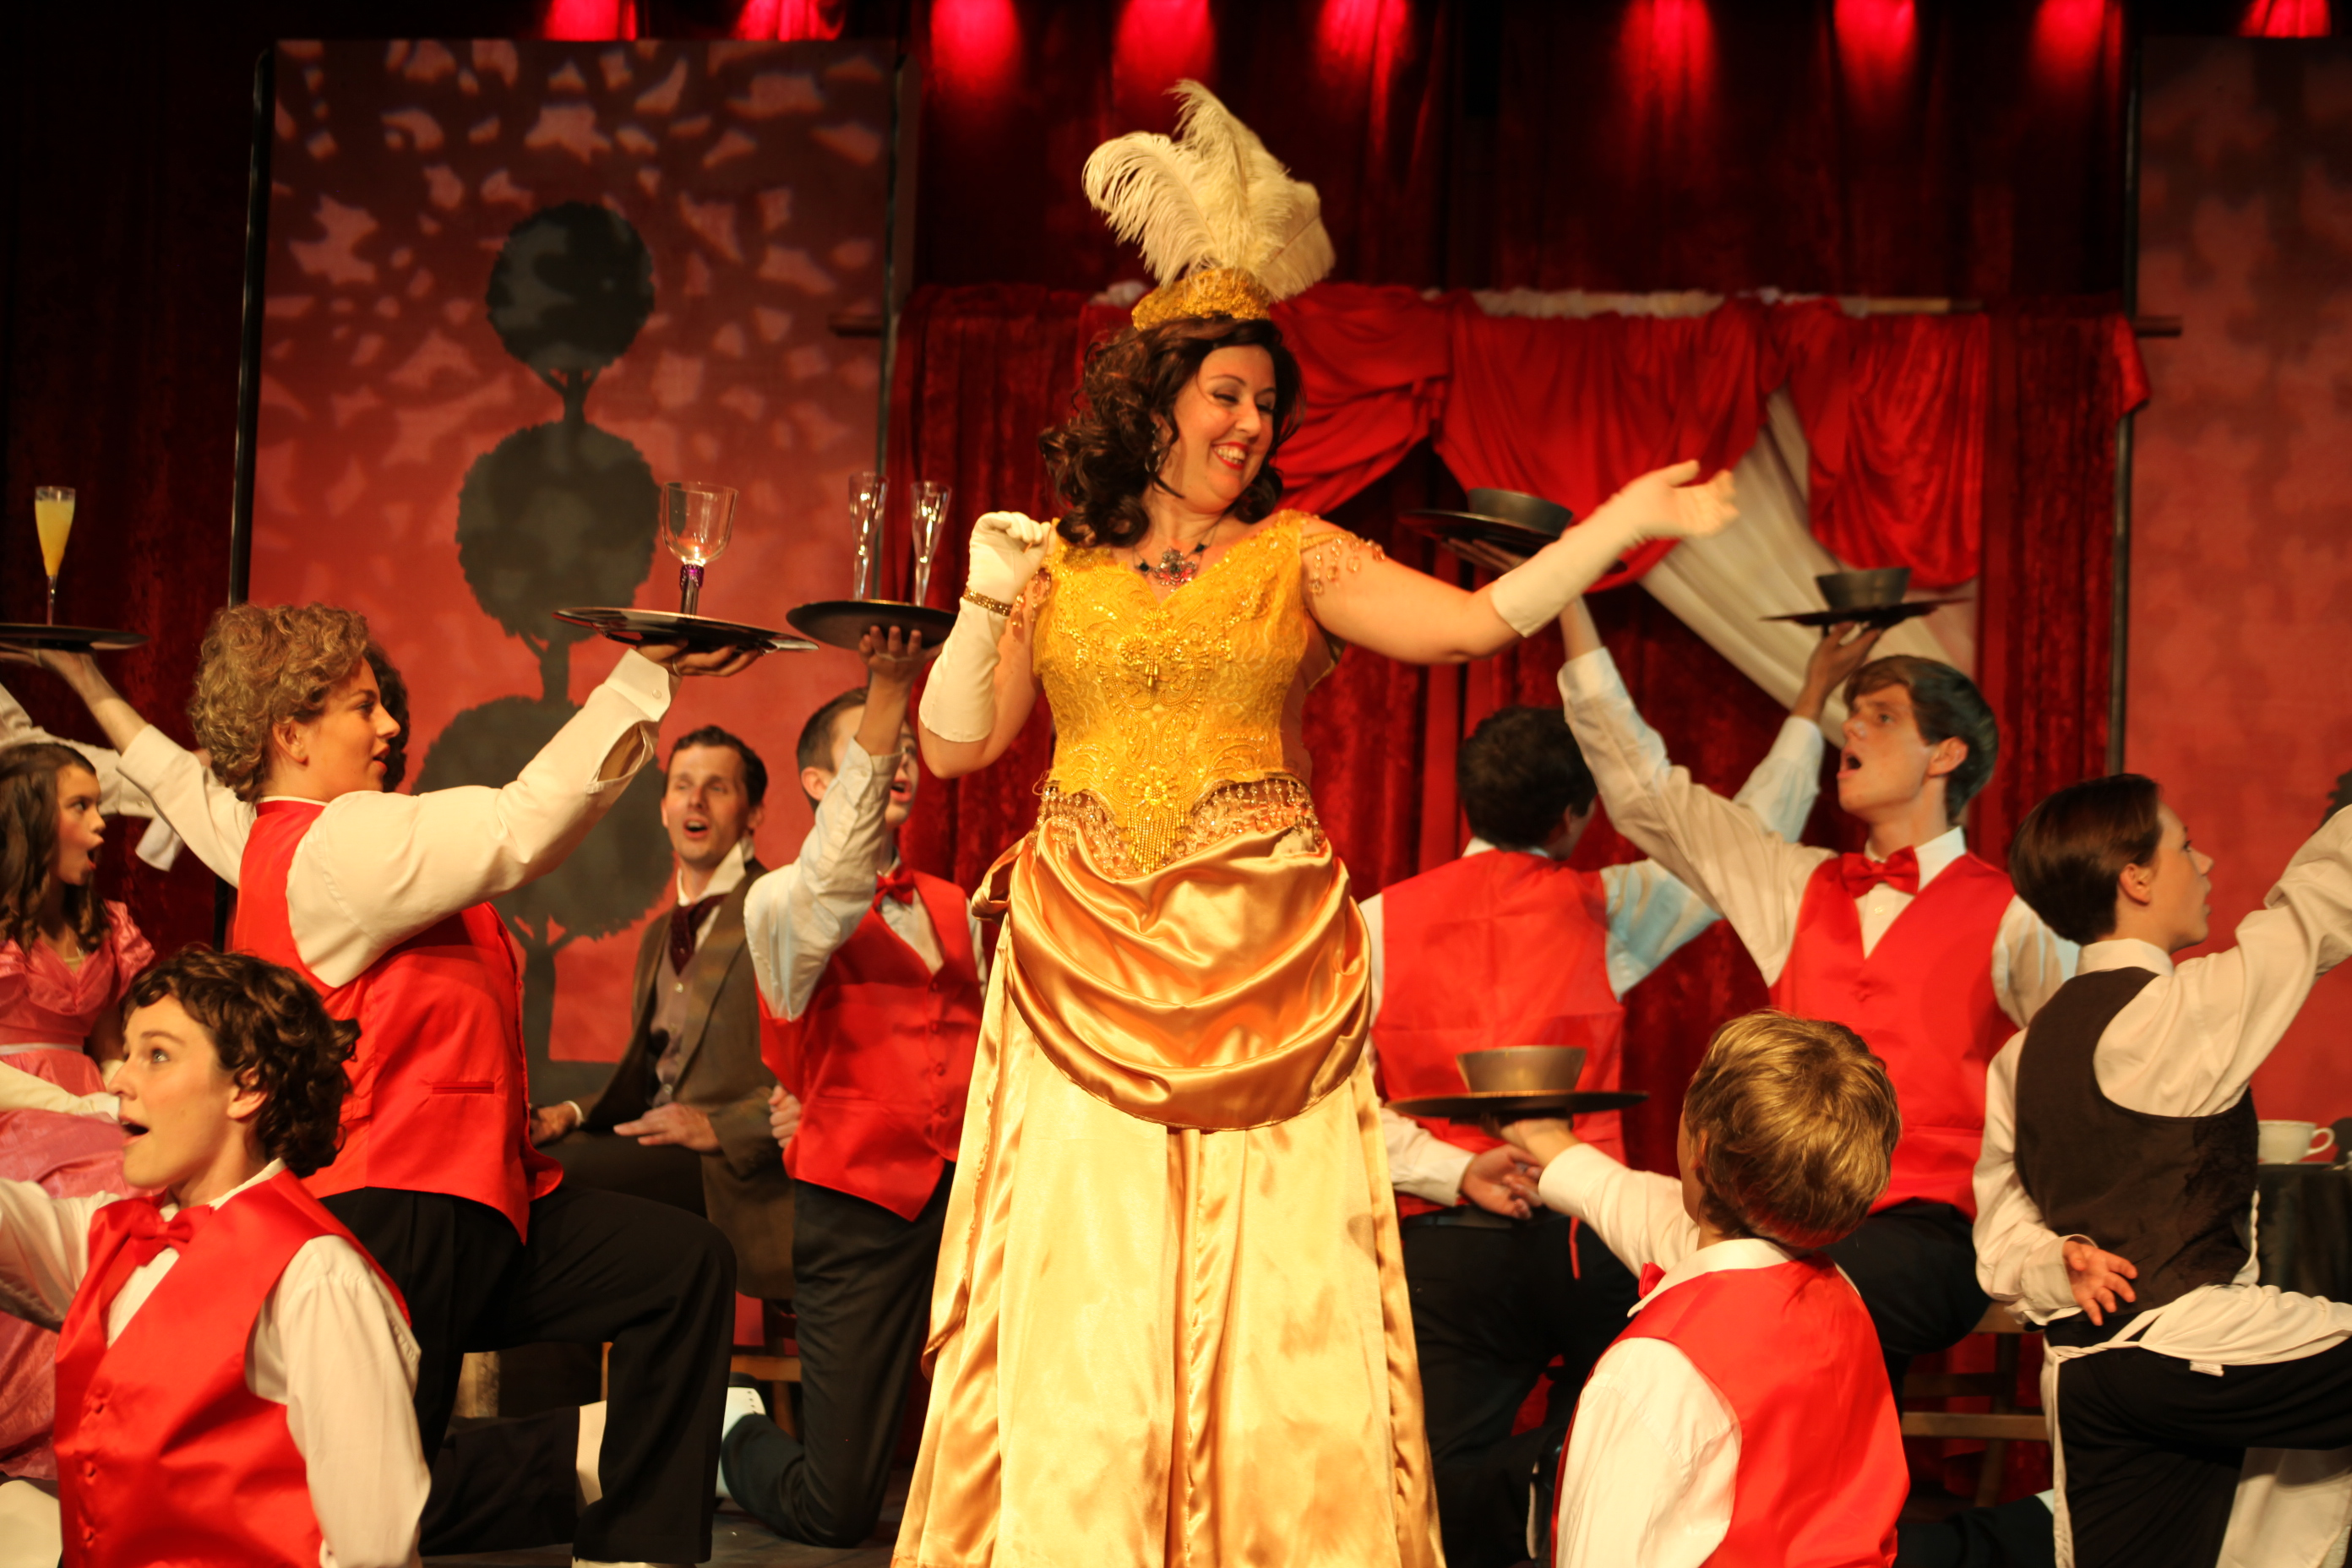 Kristin Pidcock as Dolly Levi, and the cast of servers in the cafe scene of Hello, Dolly at Limelight Theatre, on stage through July 5. Photo by Renee Unsworth